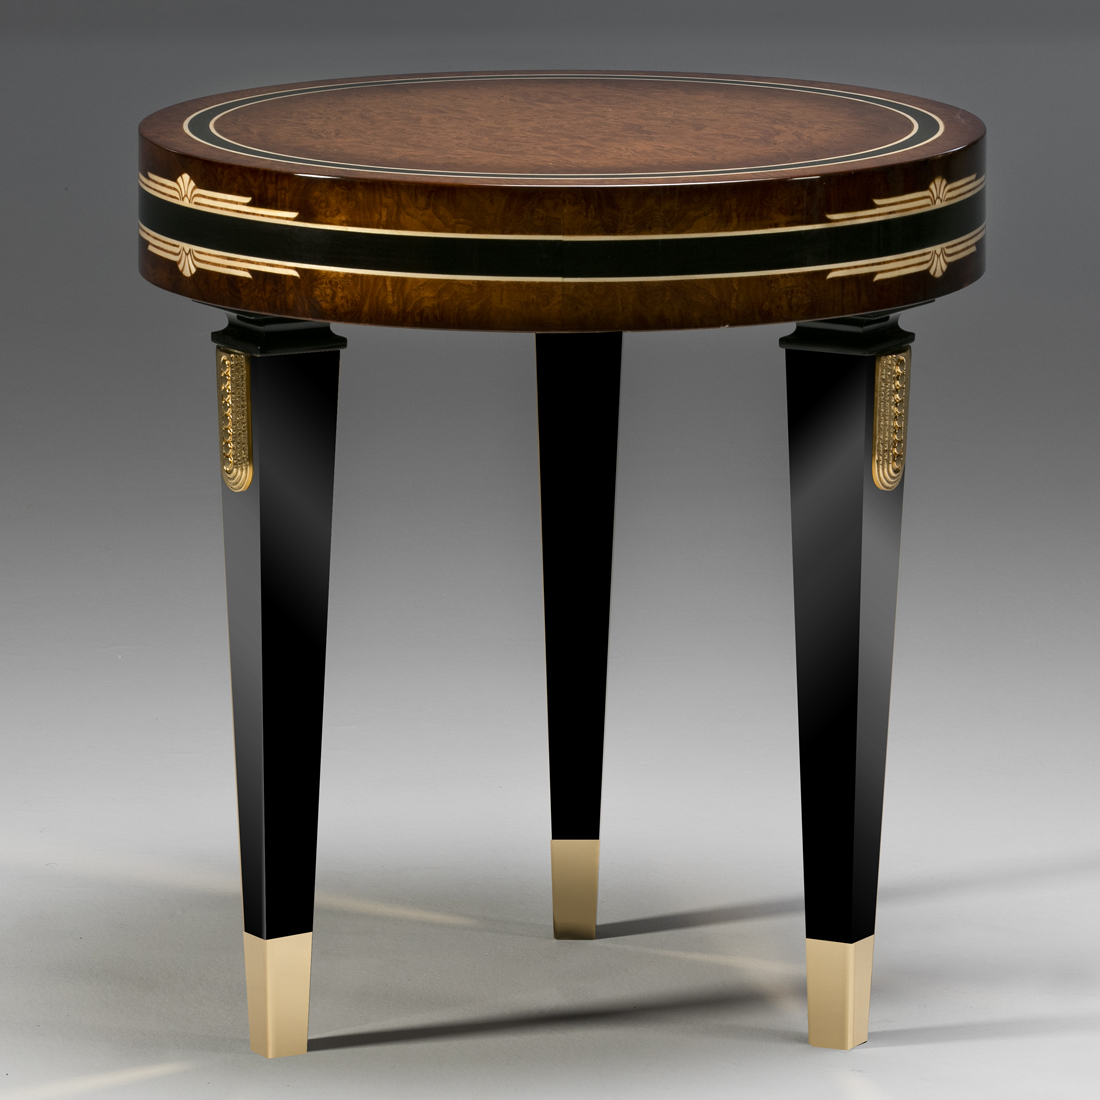 luxury art deco side table, high end art deco side table